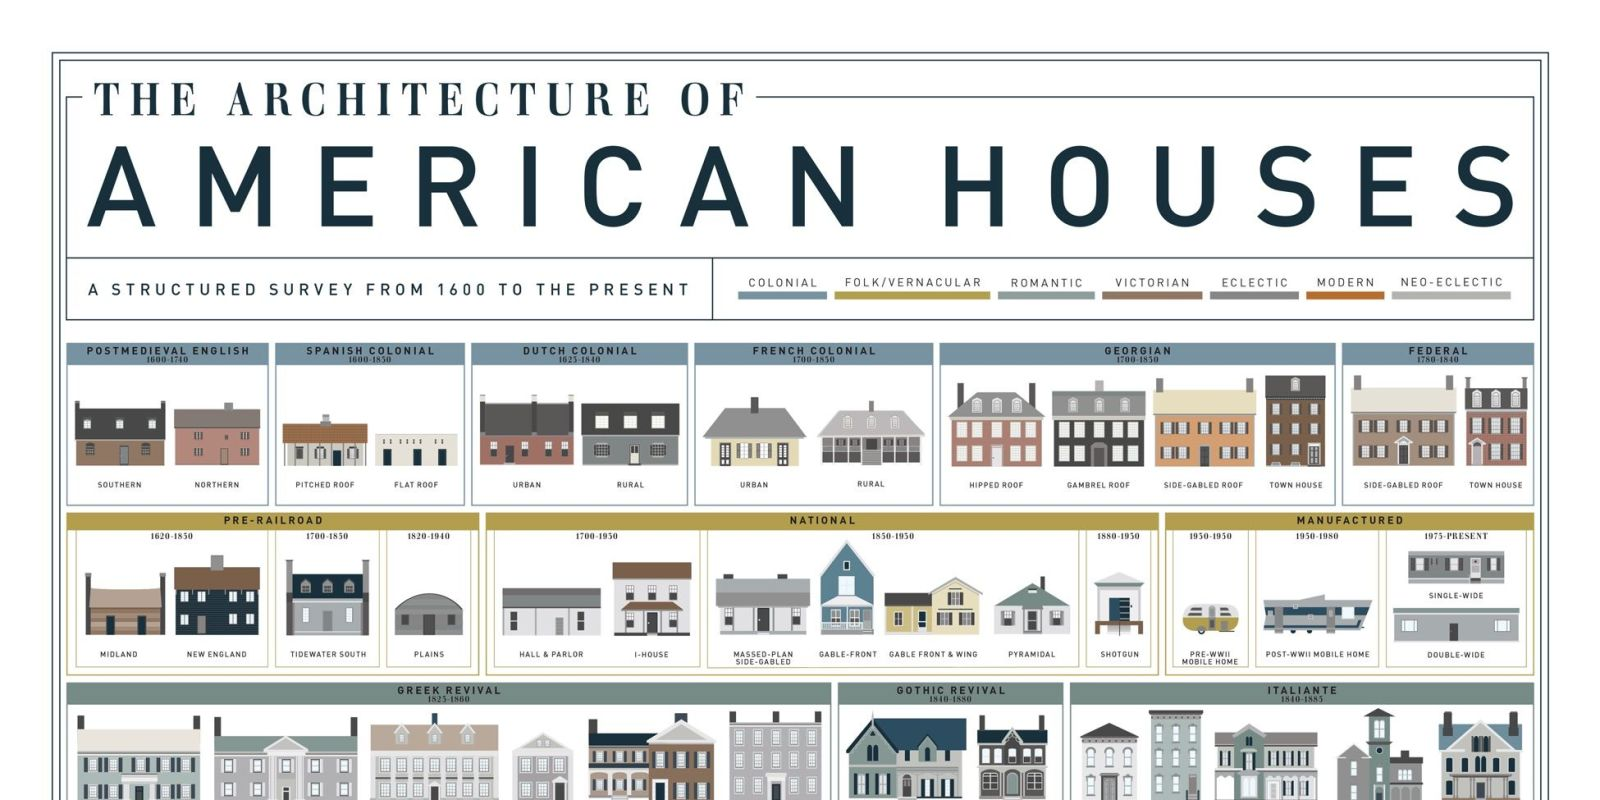 American house styles house architecture for House architecture styles